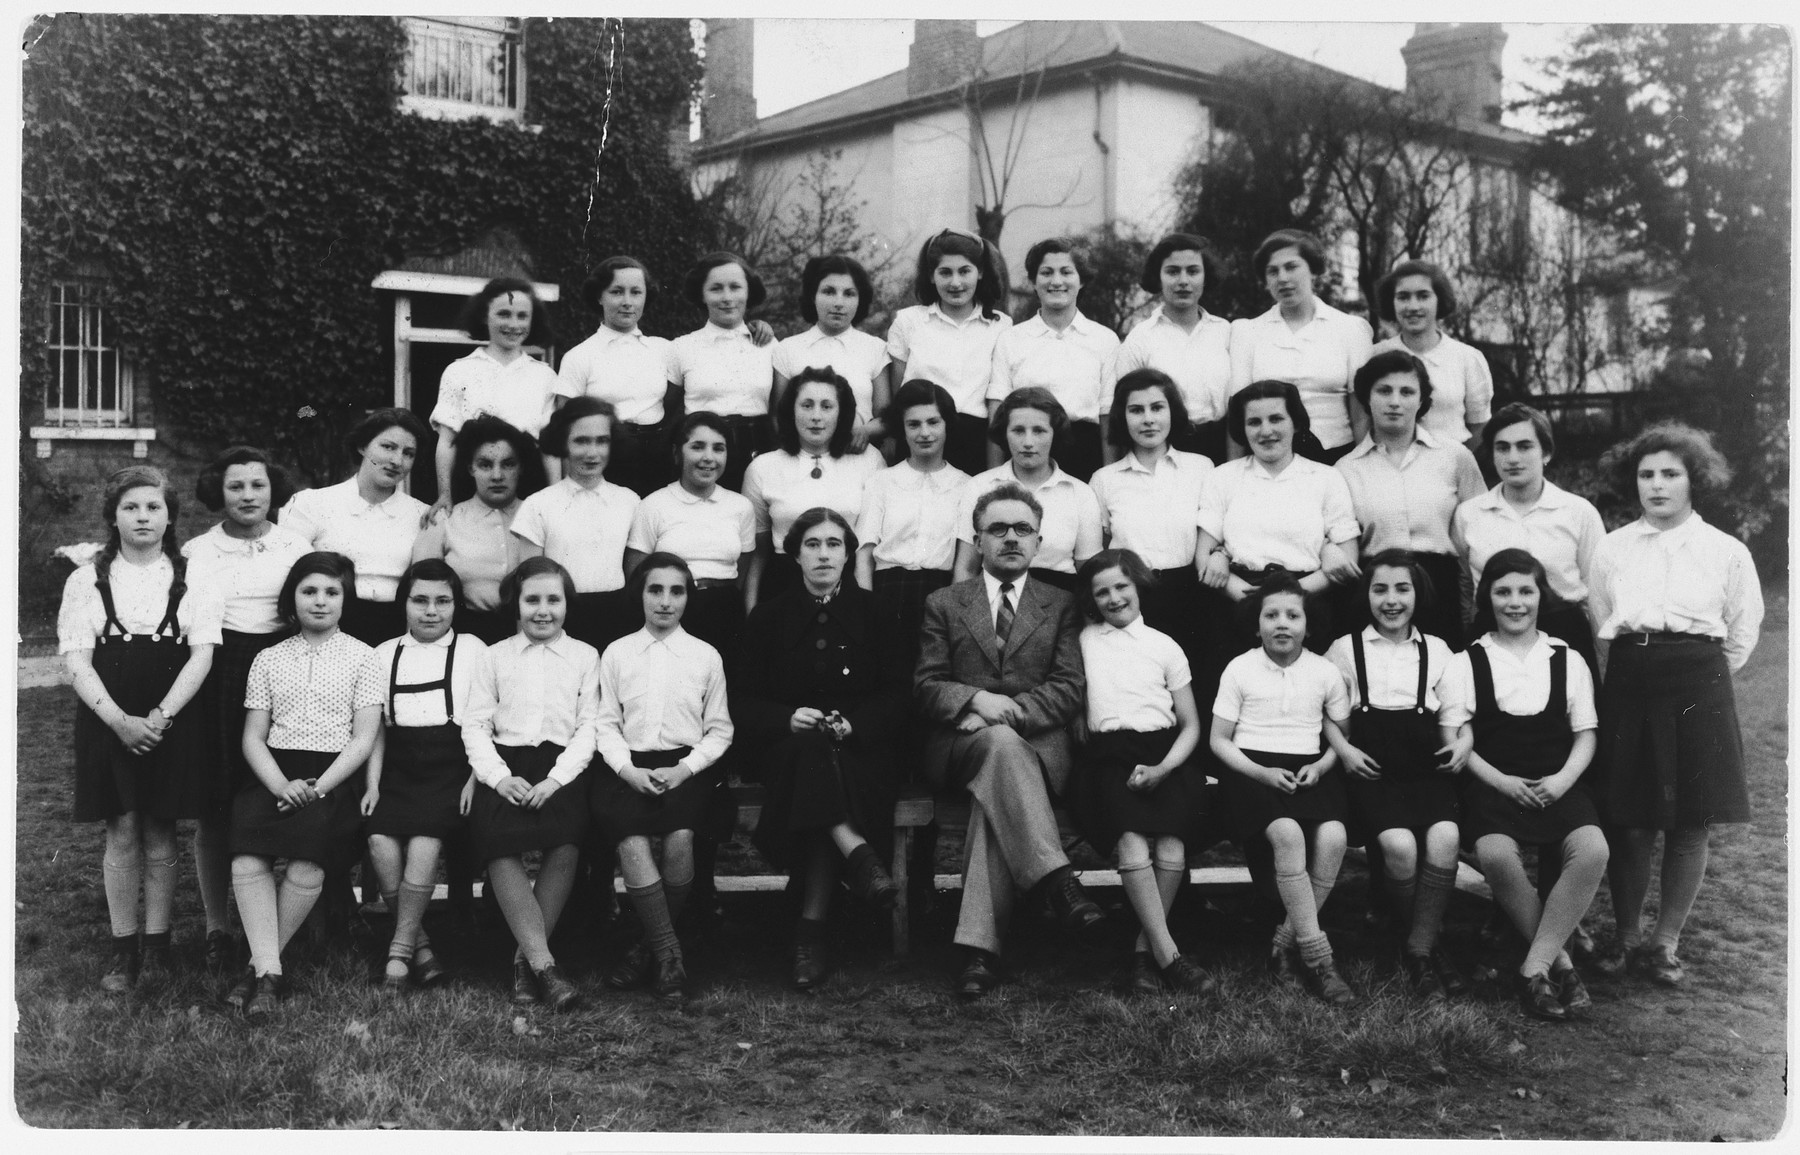 Group portrait of girls in from the 5th Avenue Hostel who came to England on a Kindertransport.  Anni Zajac is pictured standing on the right.